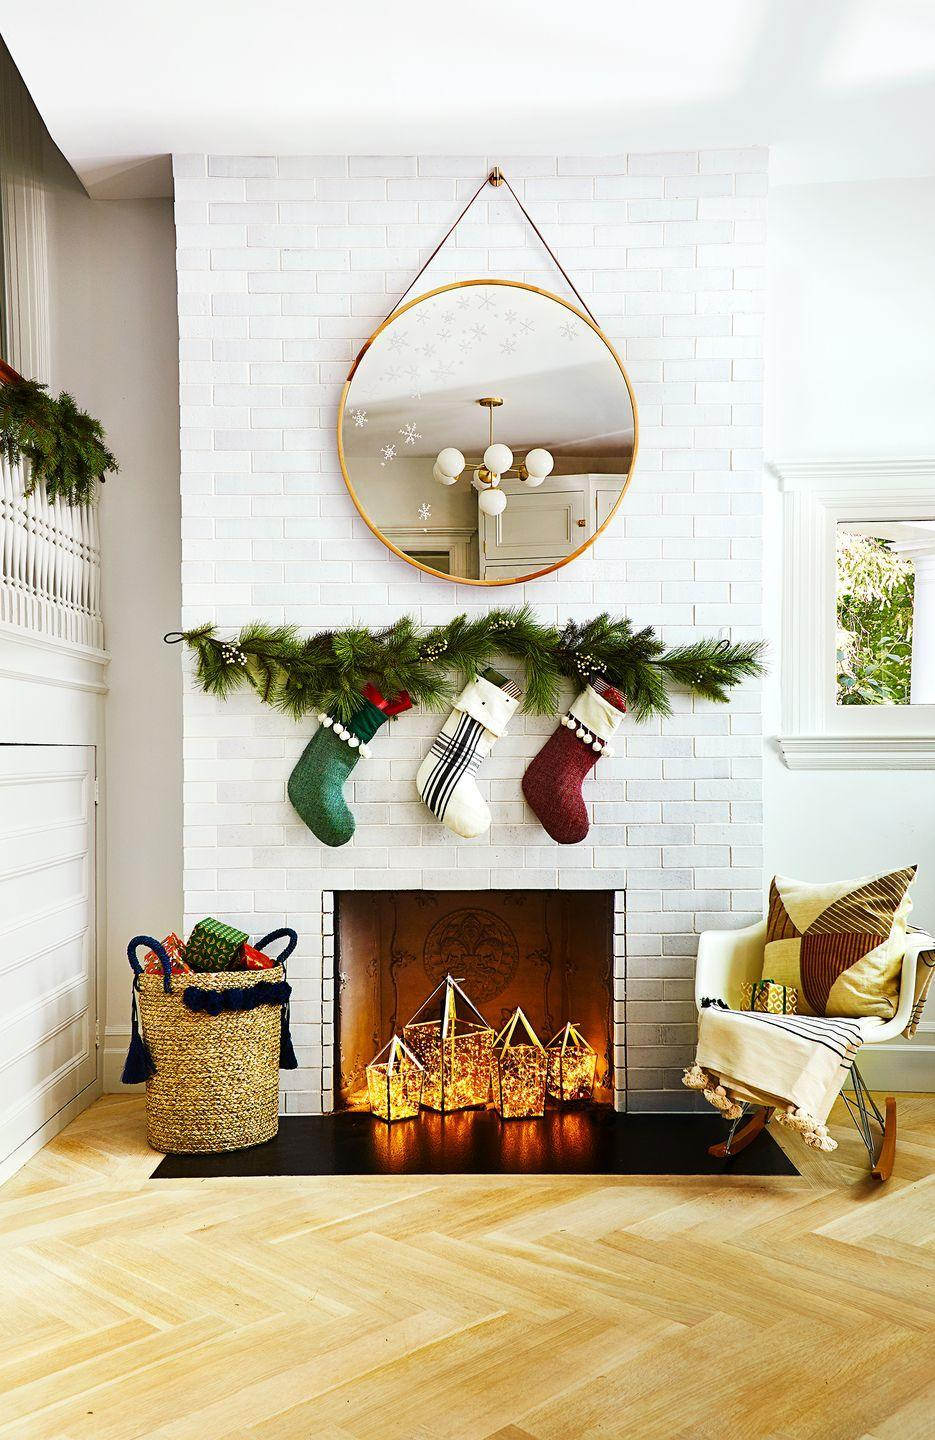 <p>Instead of putting candles in your lanterns, fill them with string lights. It's a great idea to make a non-working fireplace feel cozy. <br>And you can set this scene in five minutes flat. </p>